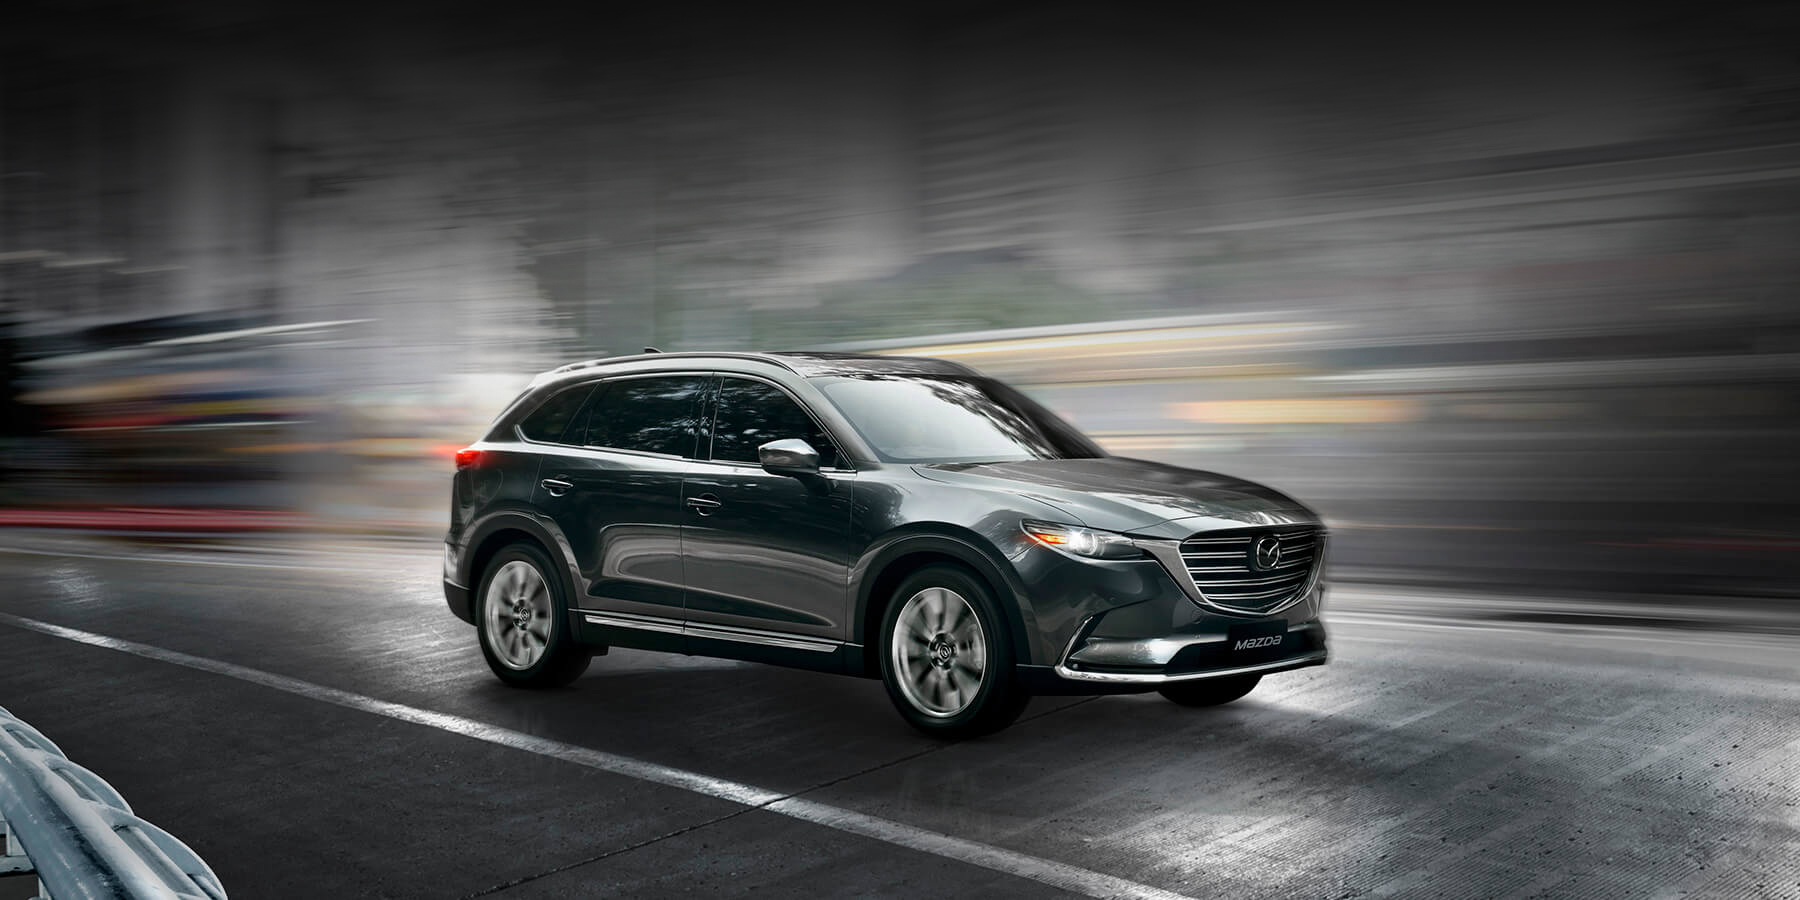 New Mazda CX-9 R AWD 2.5L Turbo CA 6AT